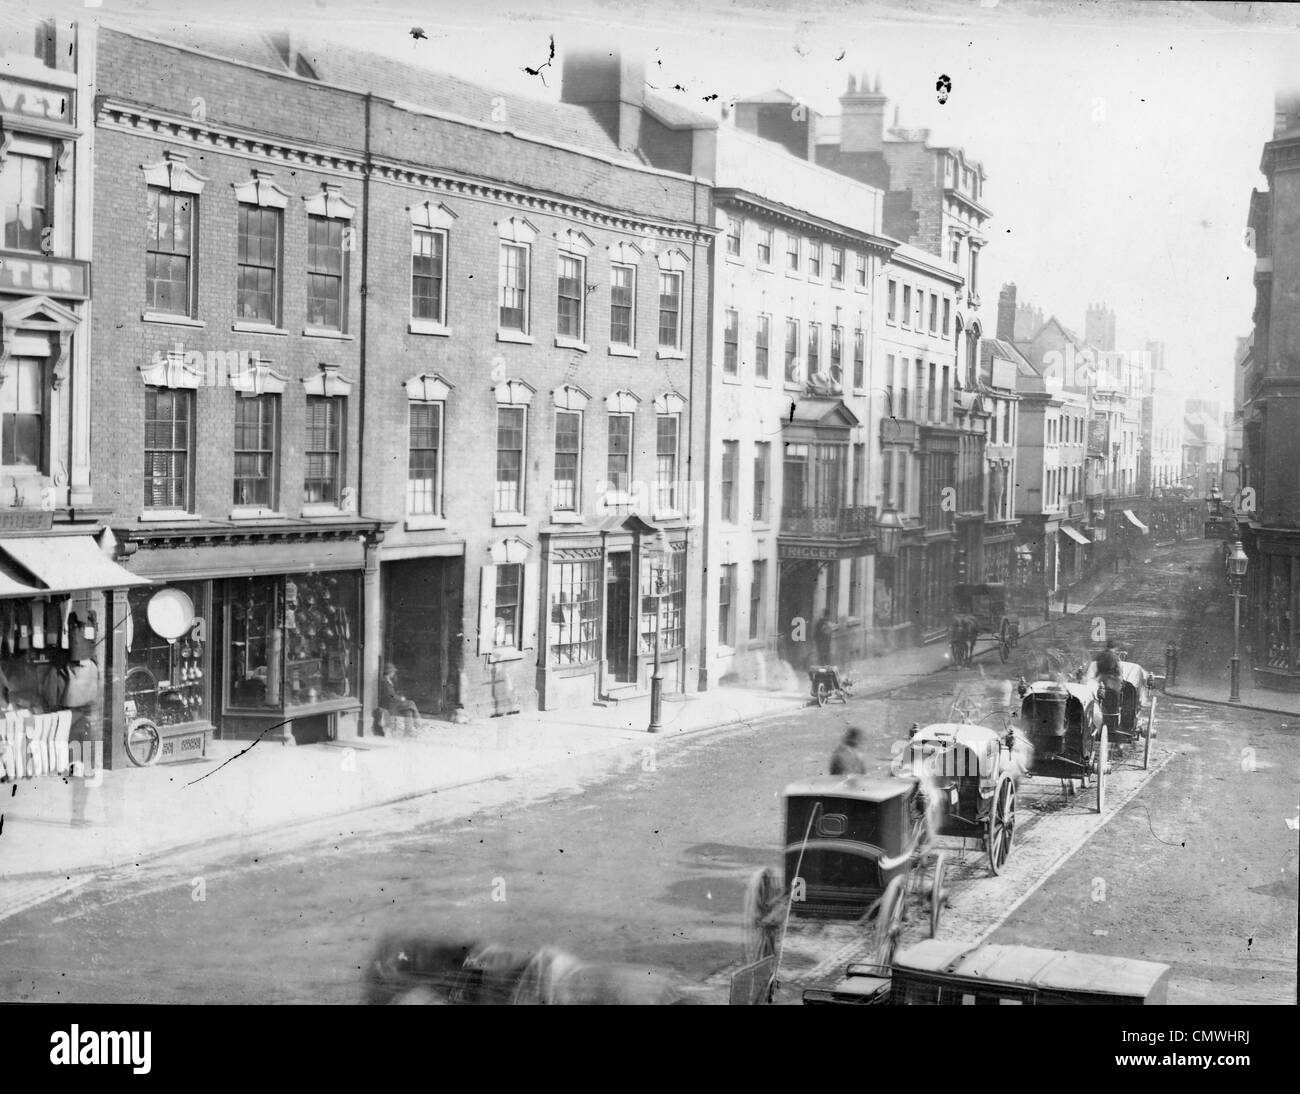 Queen Square, Wolverhampton, circa 1860s. High Green looking up High Street and Dudley Street. The image clearly - Stock Image